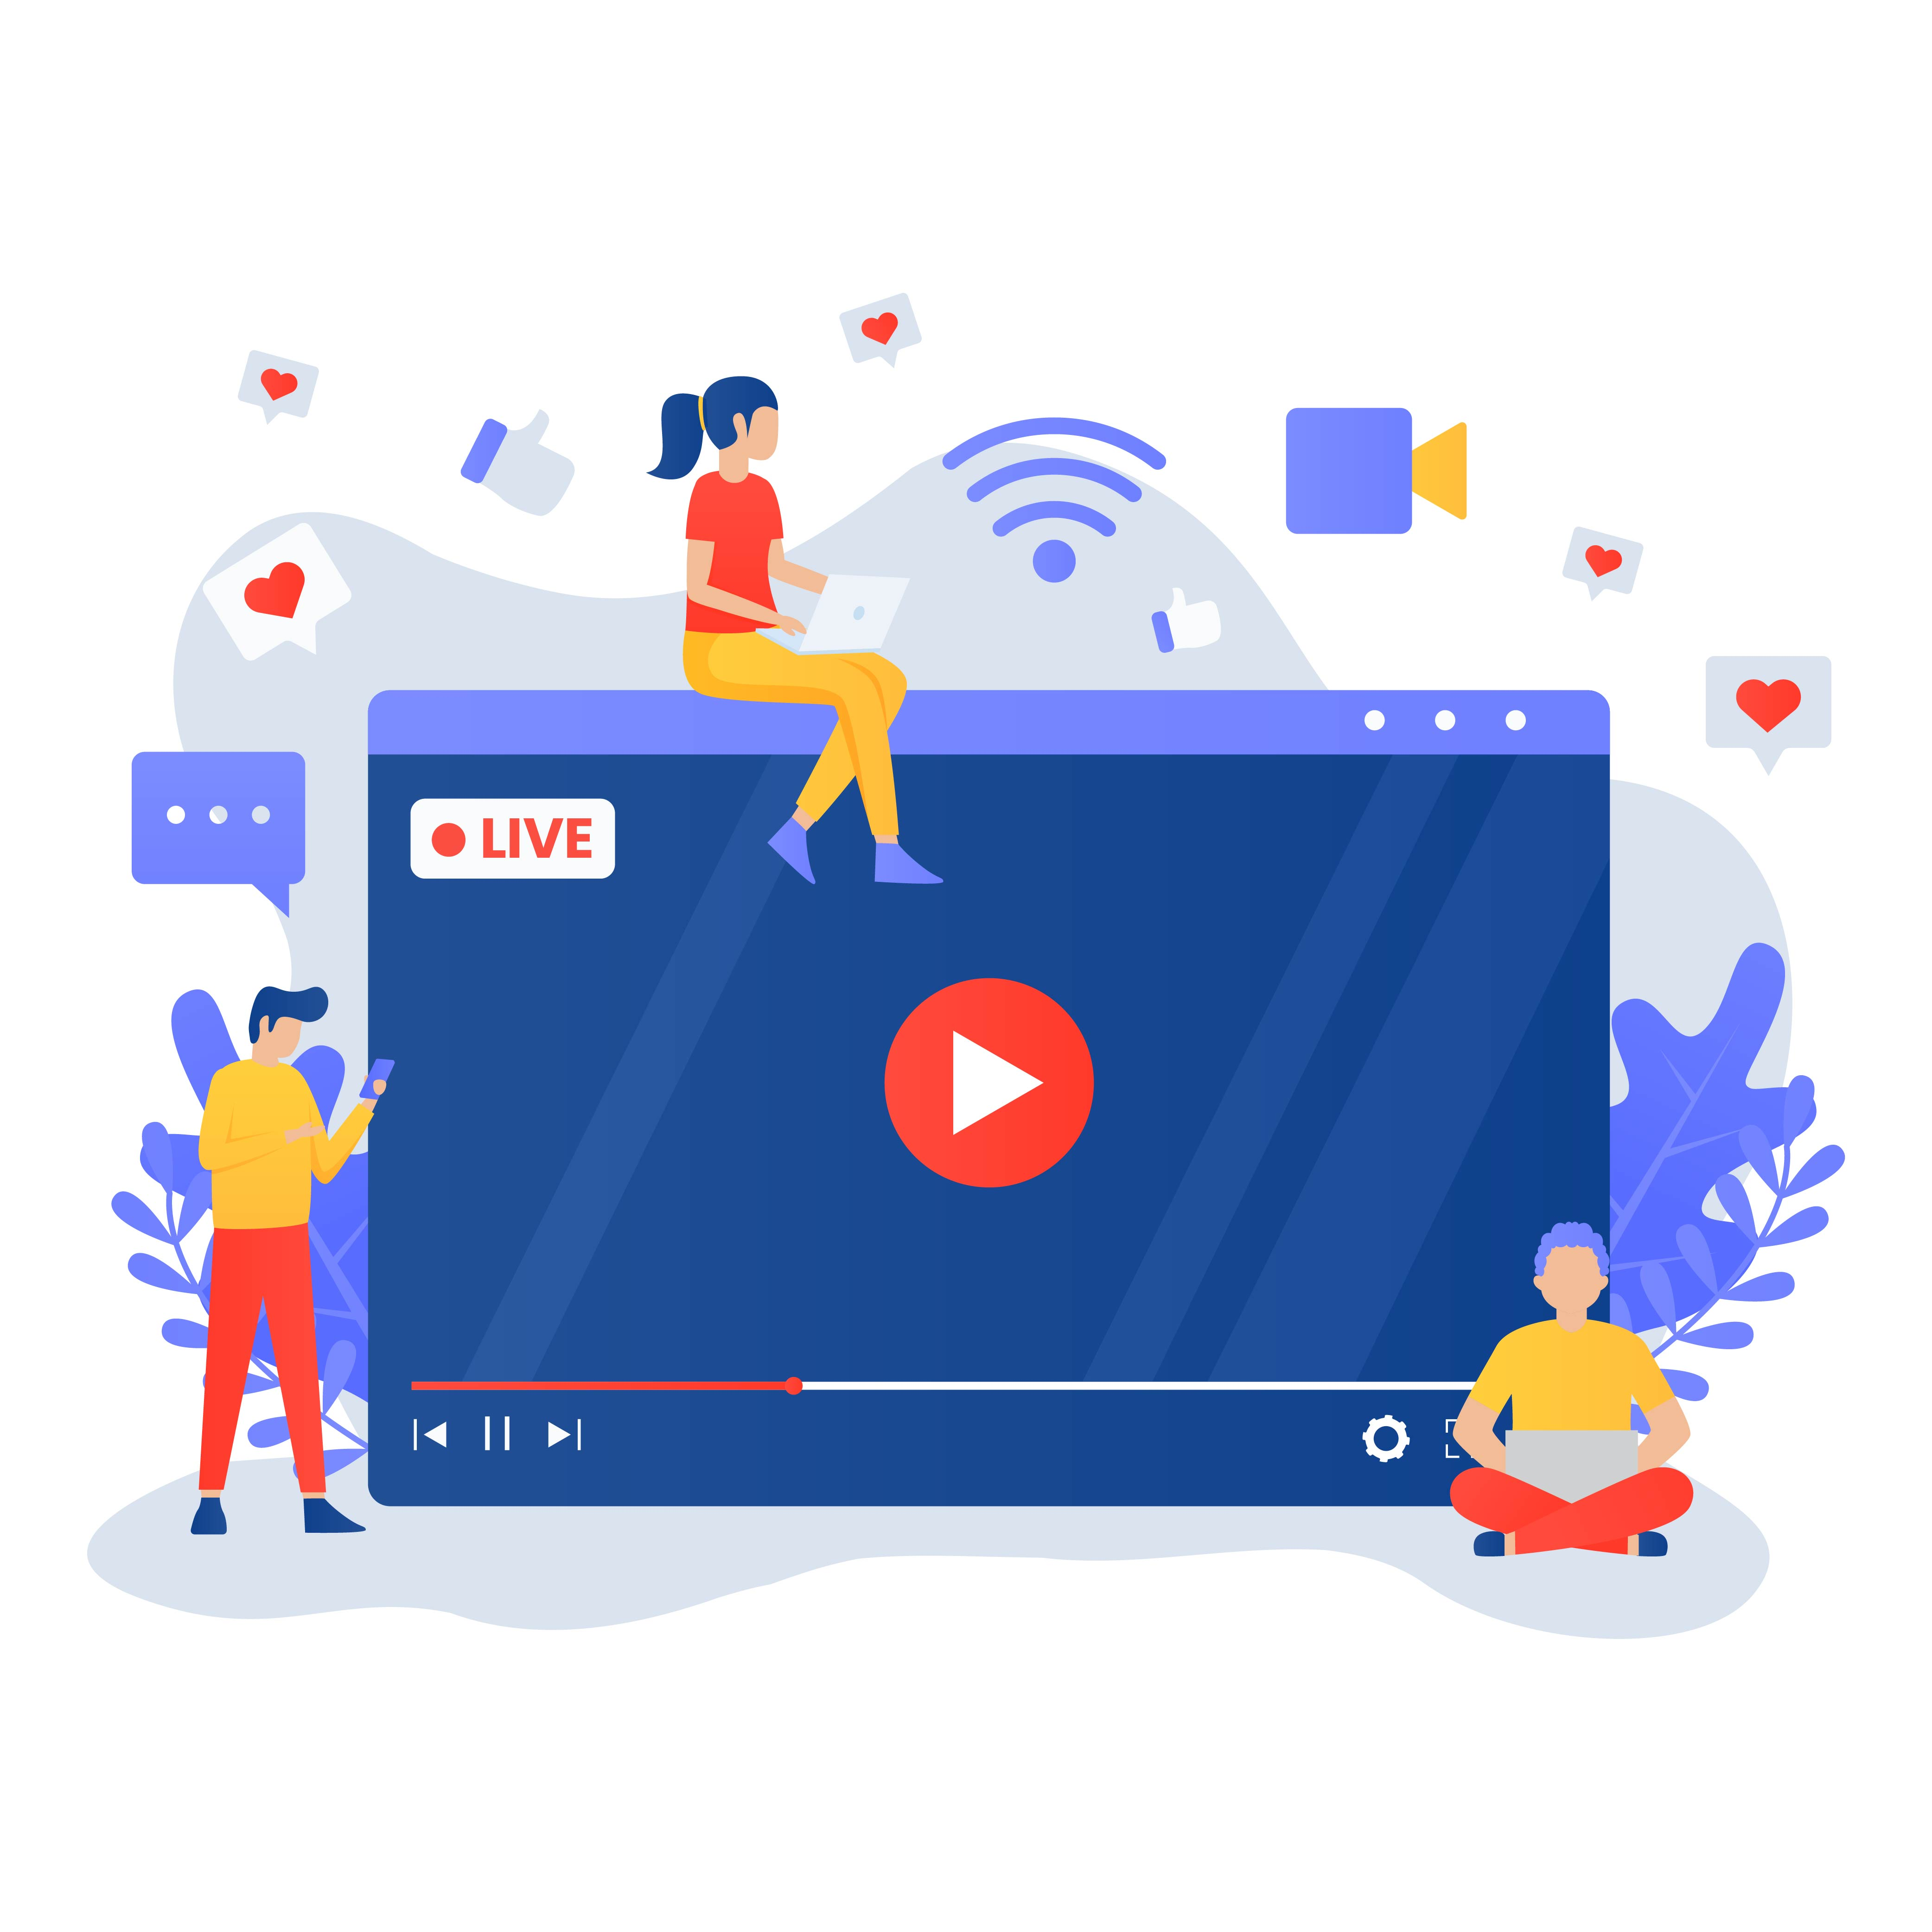 Live streaming flat design with people around screen vector